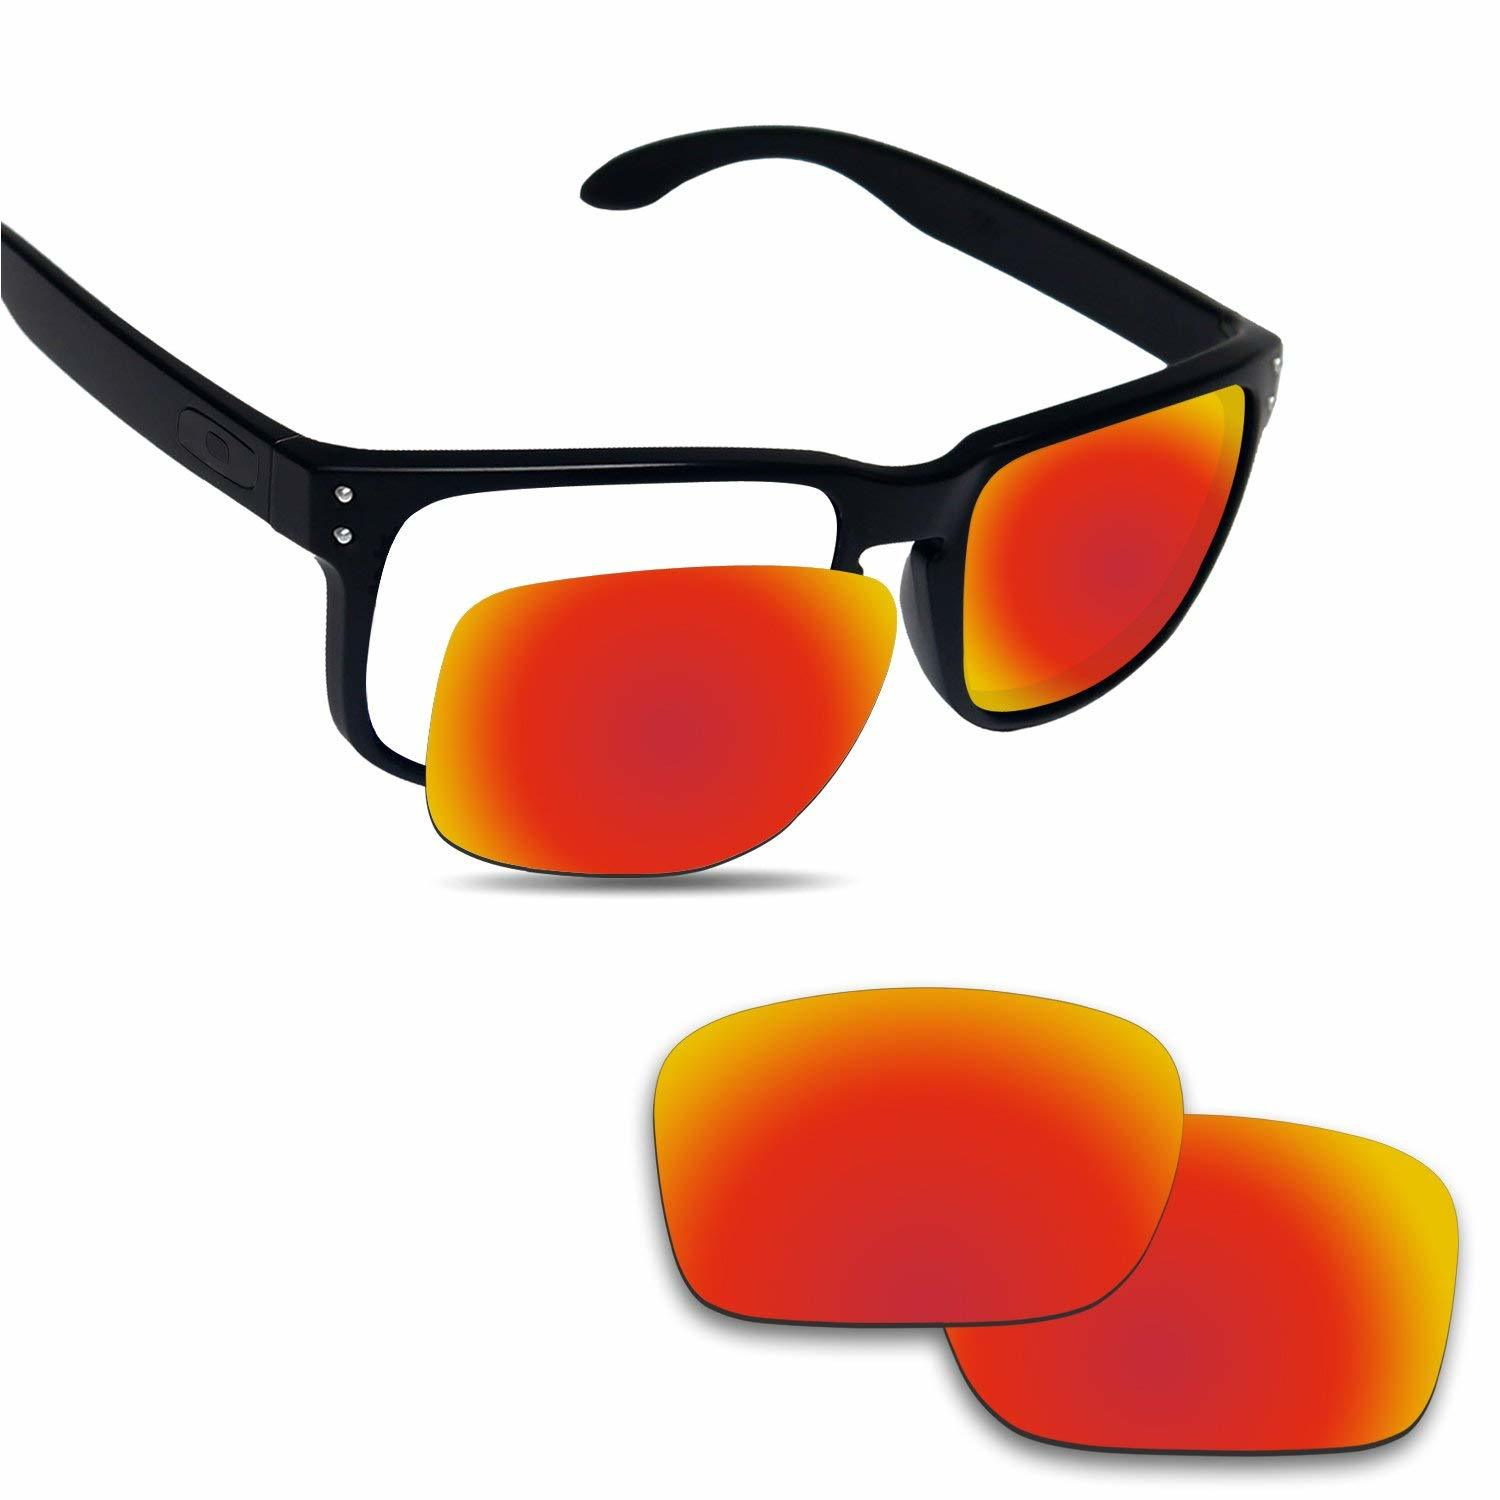 8cf82ab19c 61sbhuf3dxl. ul1500. 61sbhuf3dxl. ul1500. Anti-Saltwater Replacement Lenses  for Oakley Holbrook Sunglasses - Various Color ...